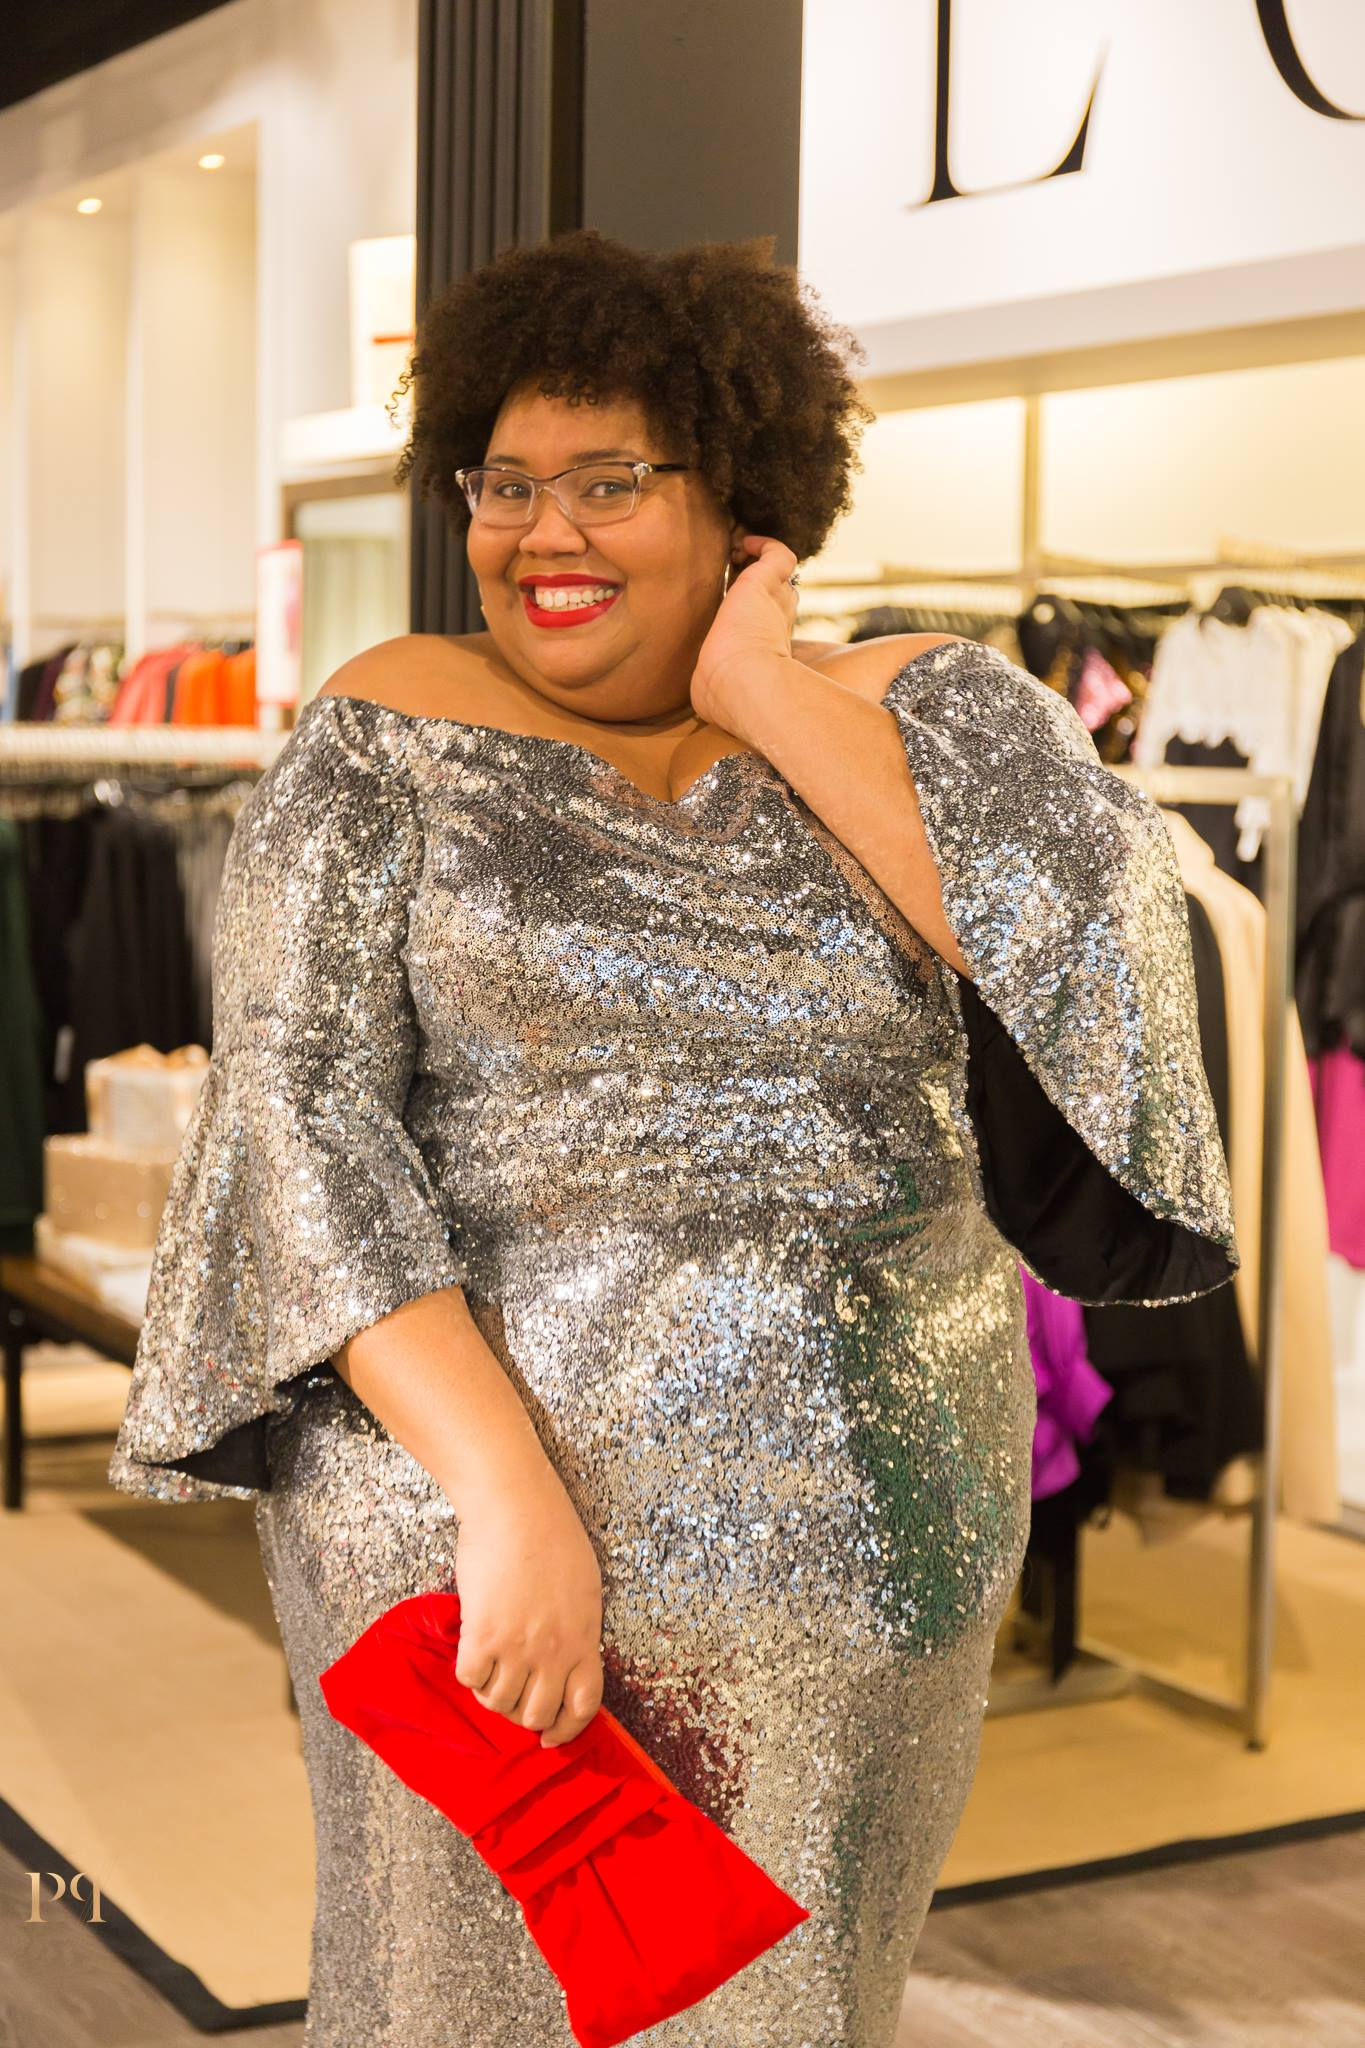 The face you make when you realize you look banging in this dress and it comes in 3 colors....my poor wallet. Photo cred: Tashia Harris